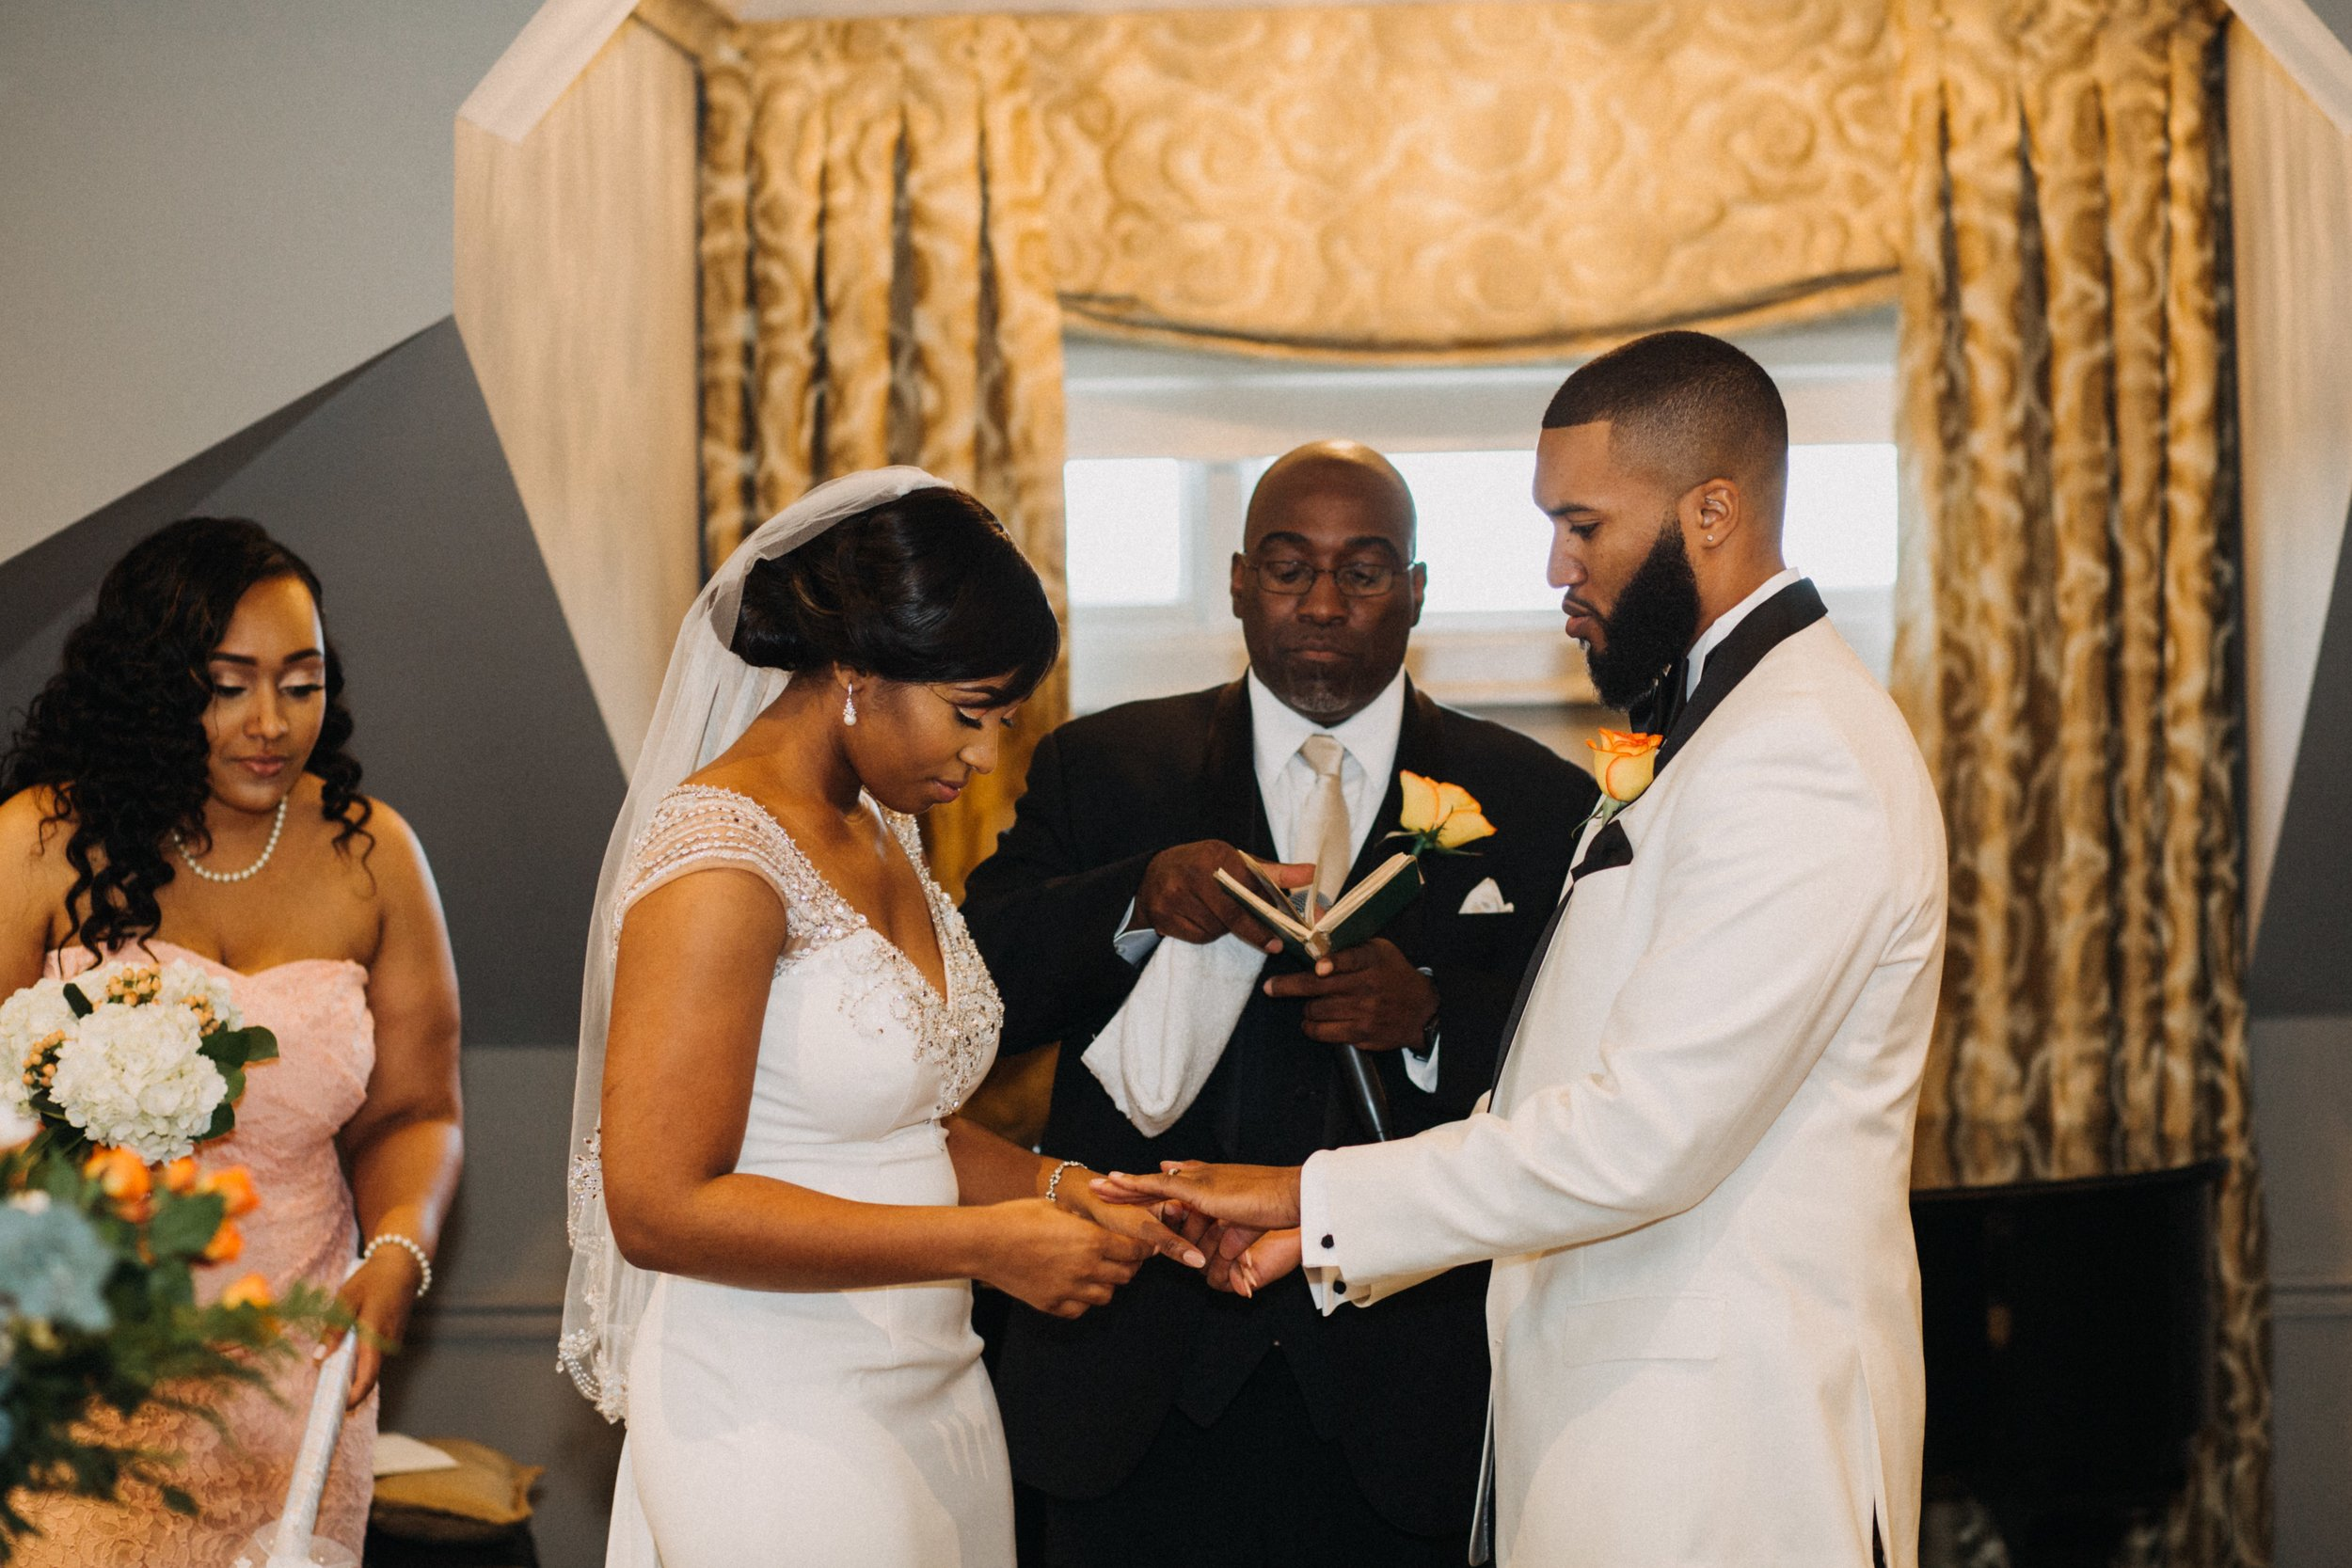 When the groom see's his ring for the first time. Priceless!